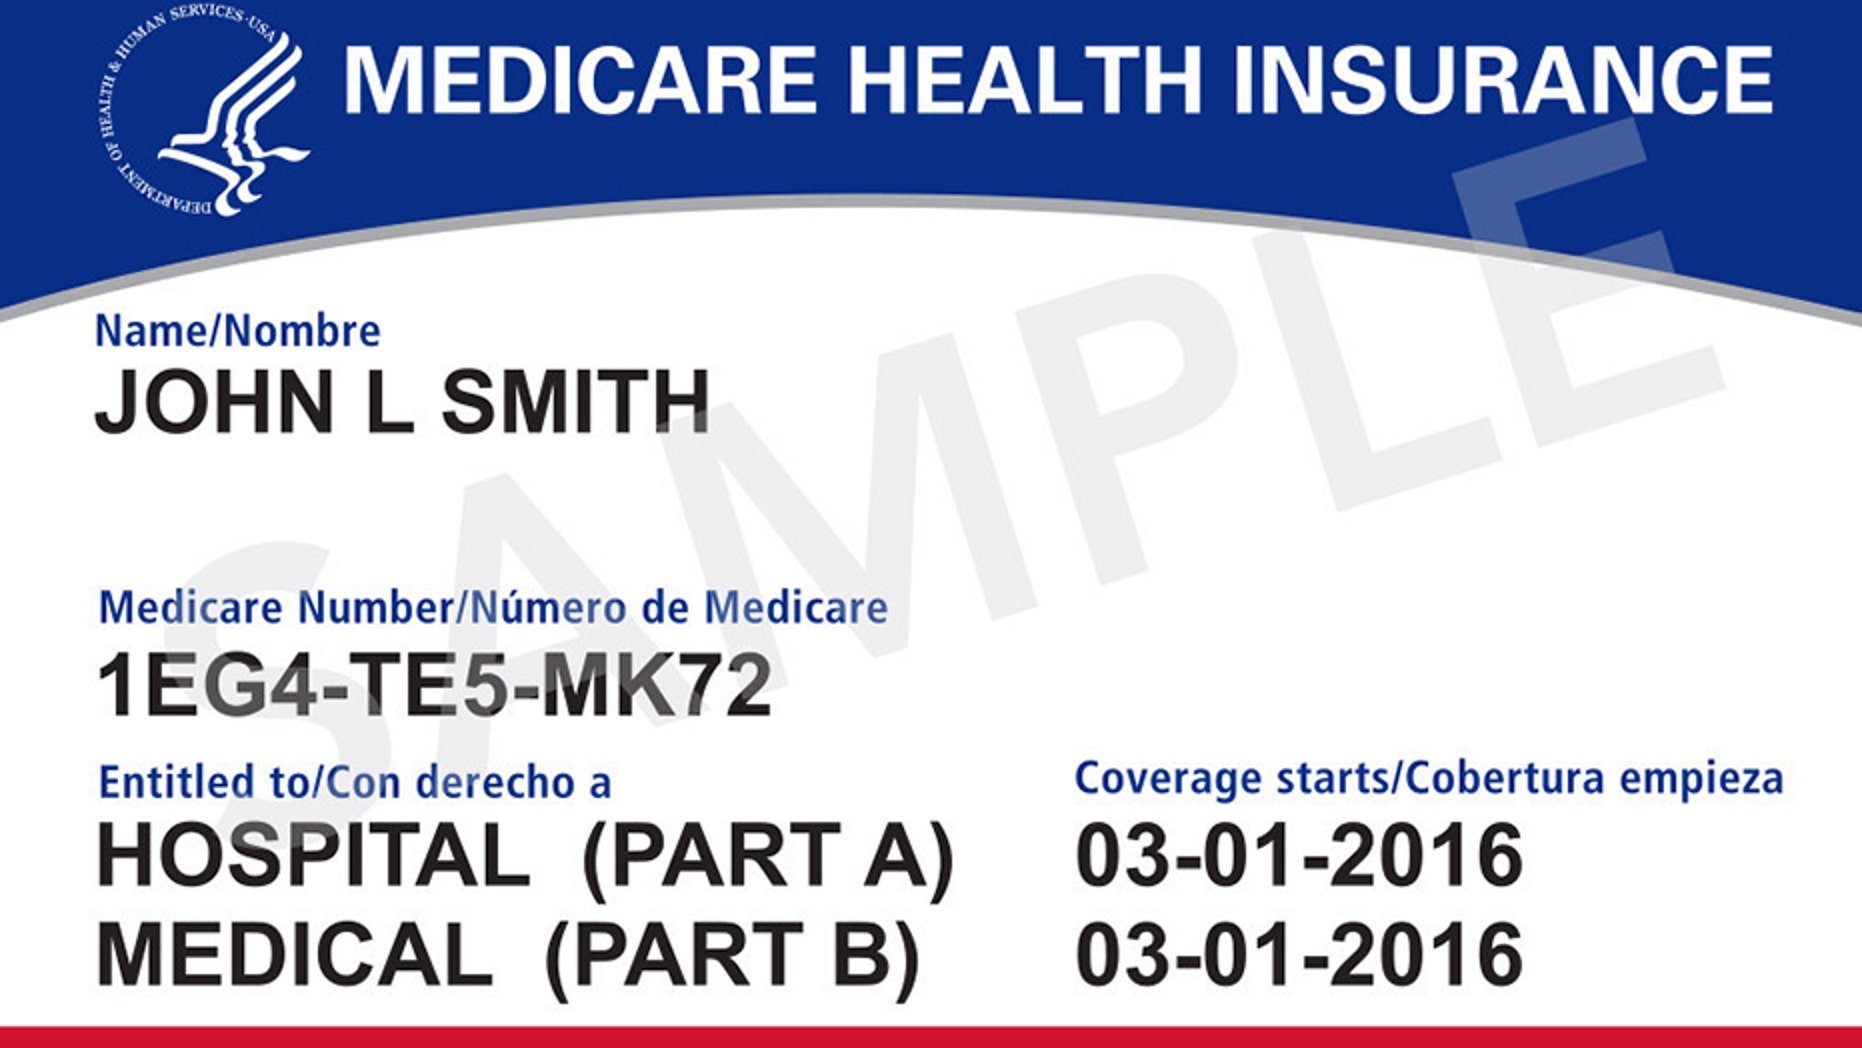 The new Medicare card no longer contains Social Security numbers.